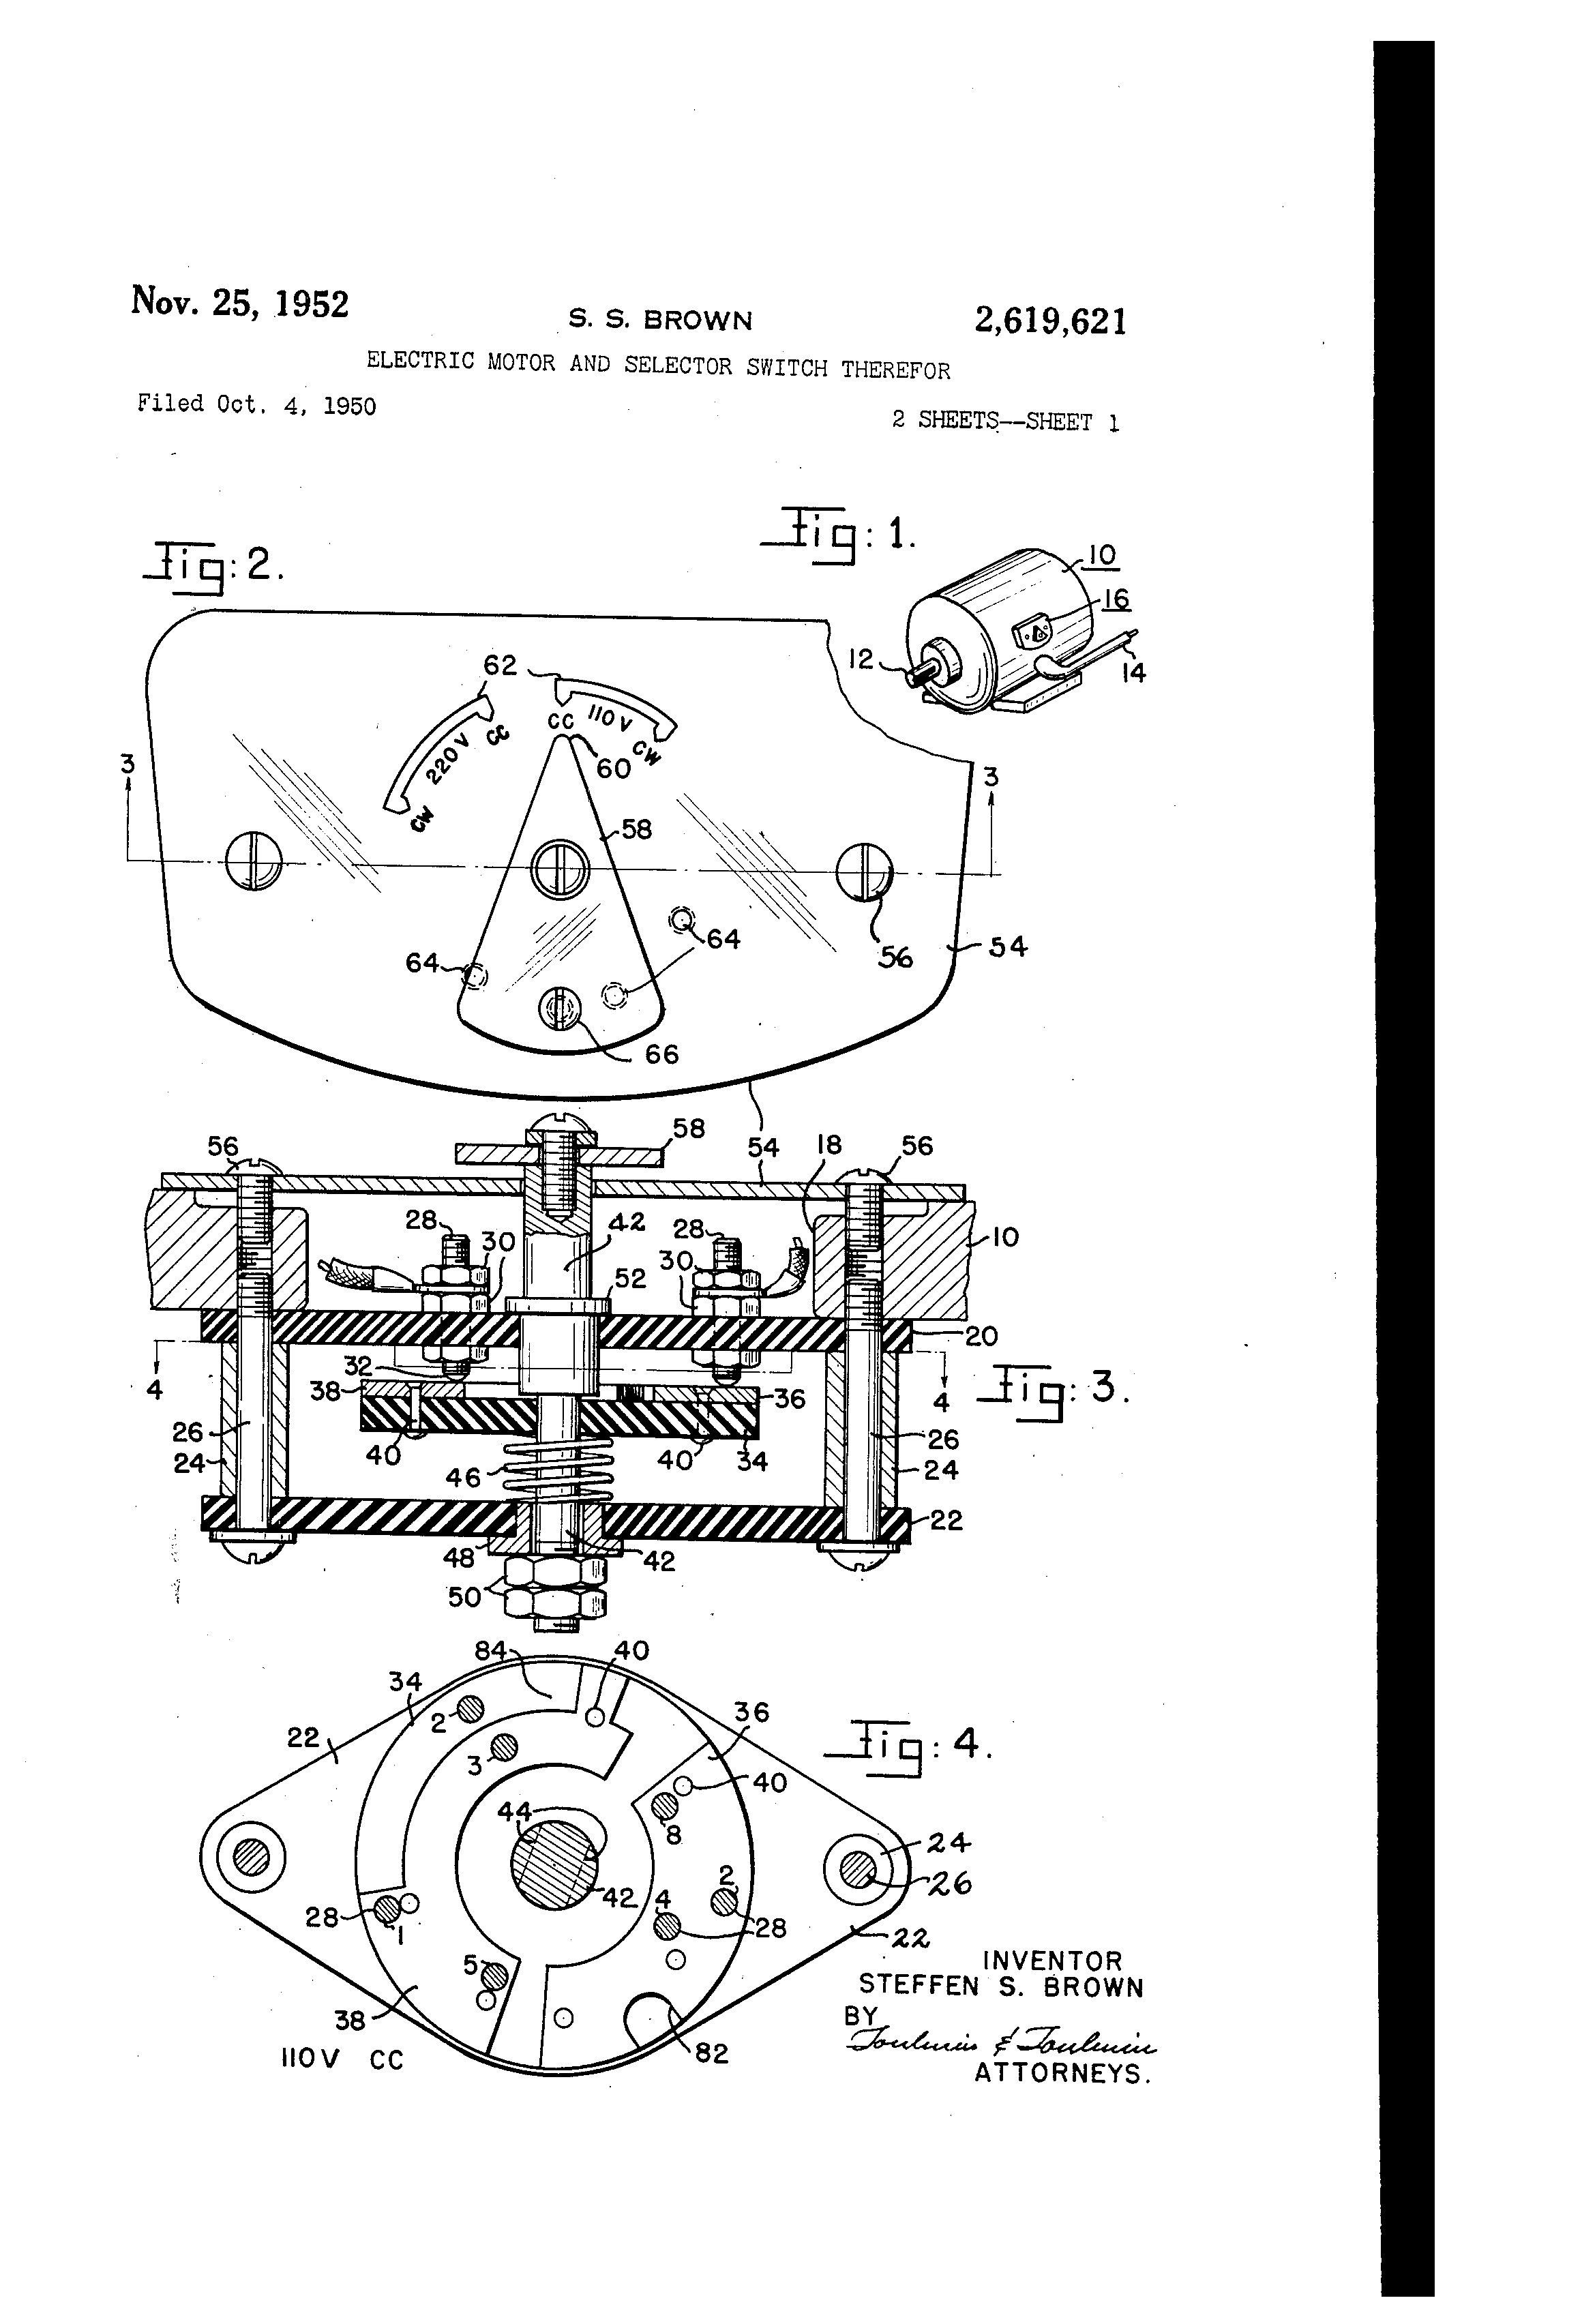 US2619621 0 patent us2619621 electric motor and selector switch therefor,Dayton Electric Motor Wiring Schematics